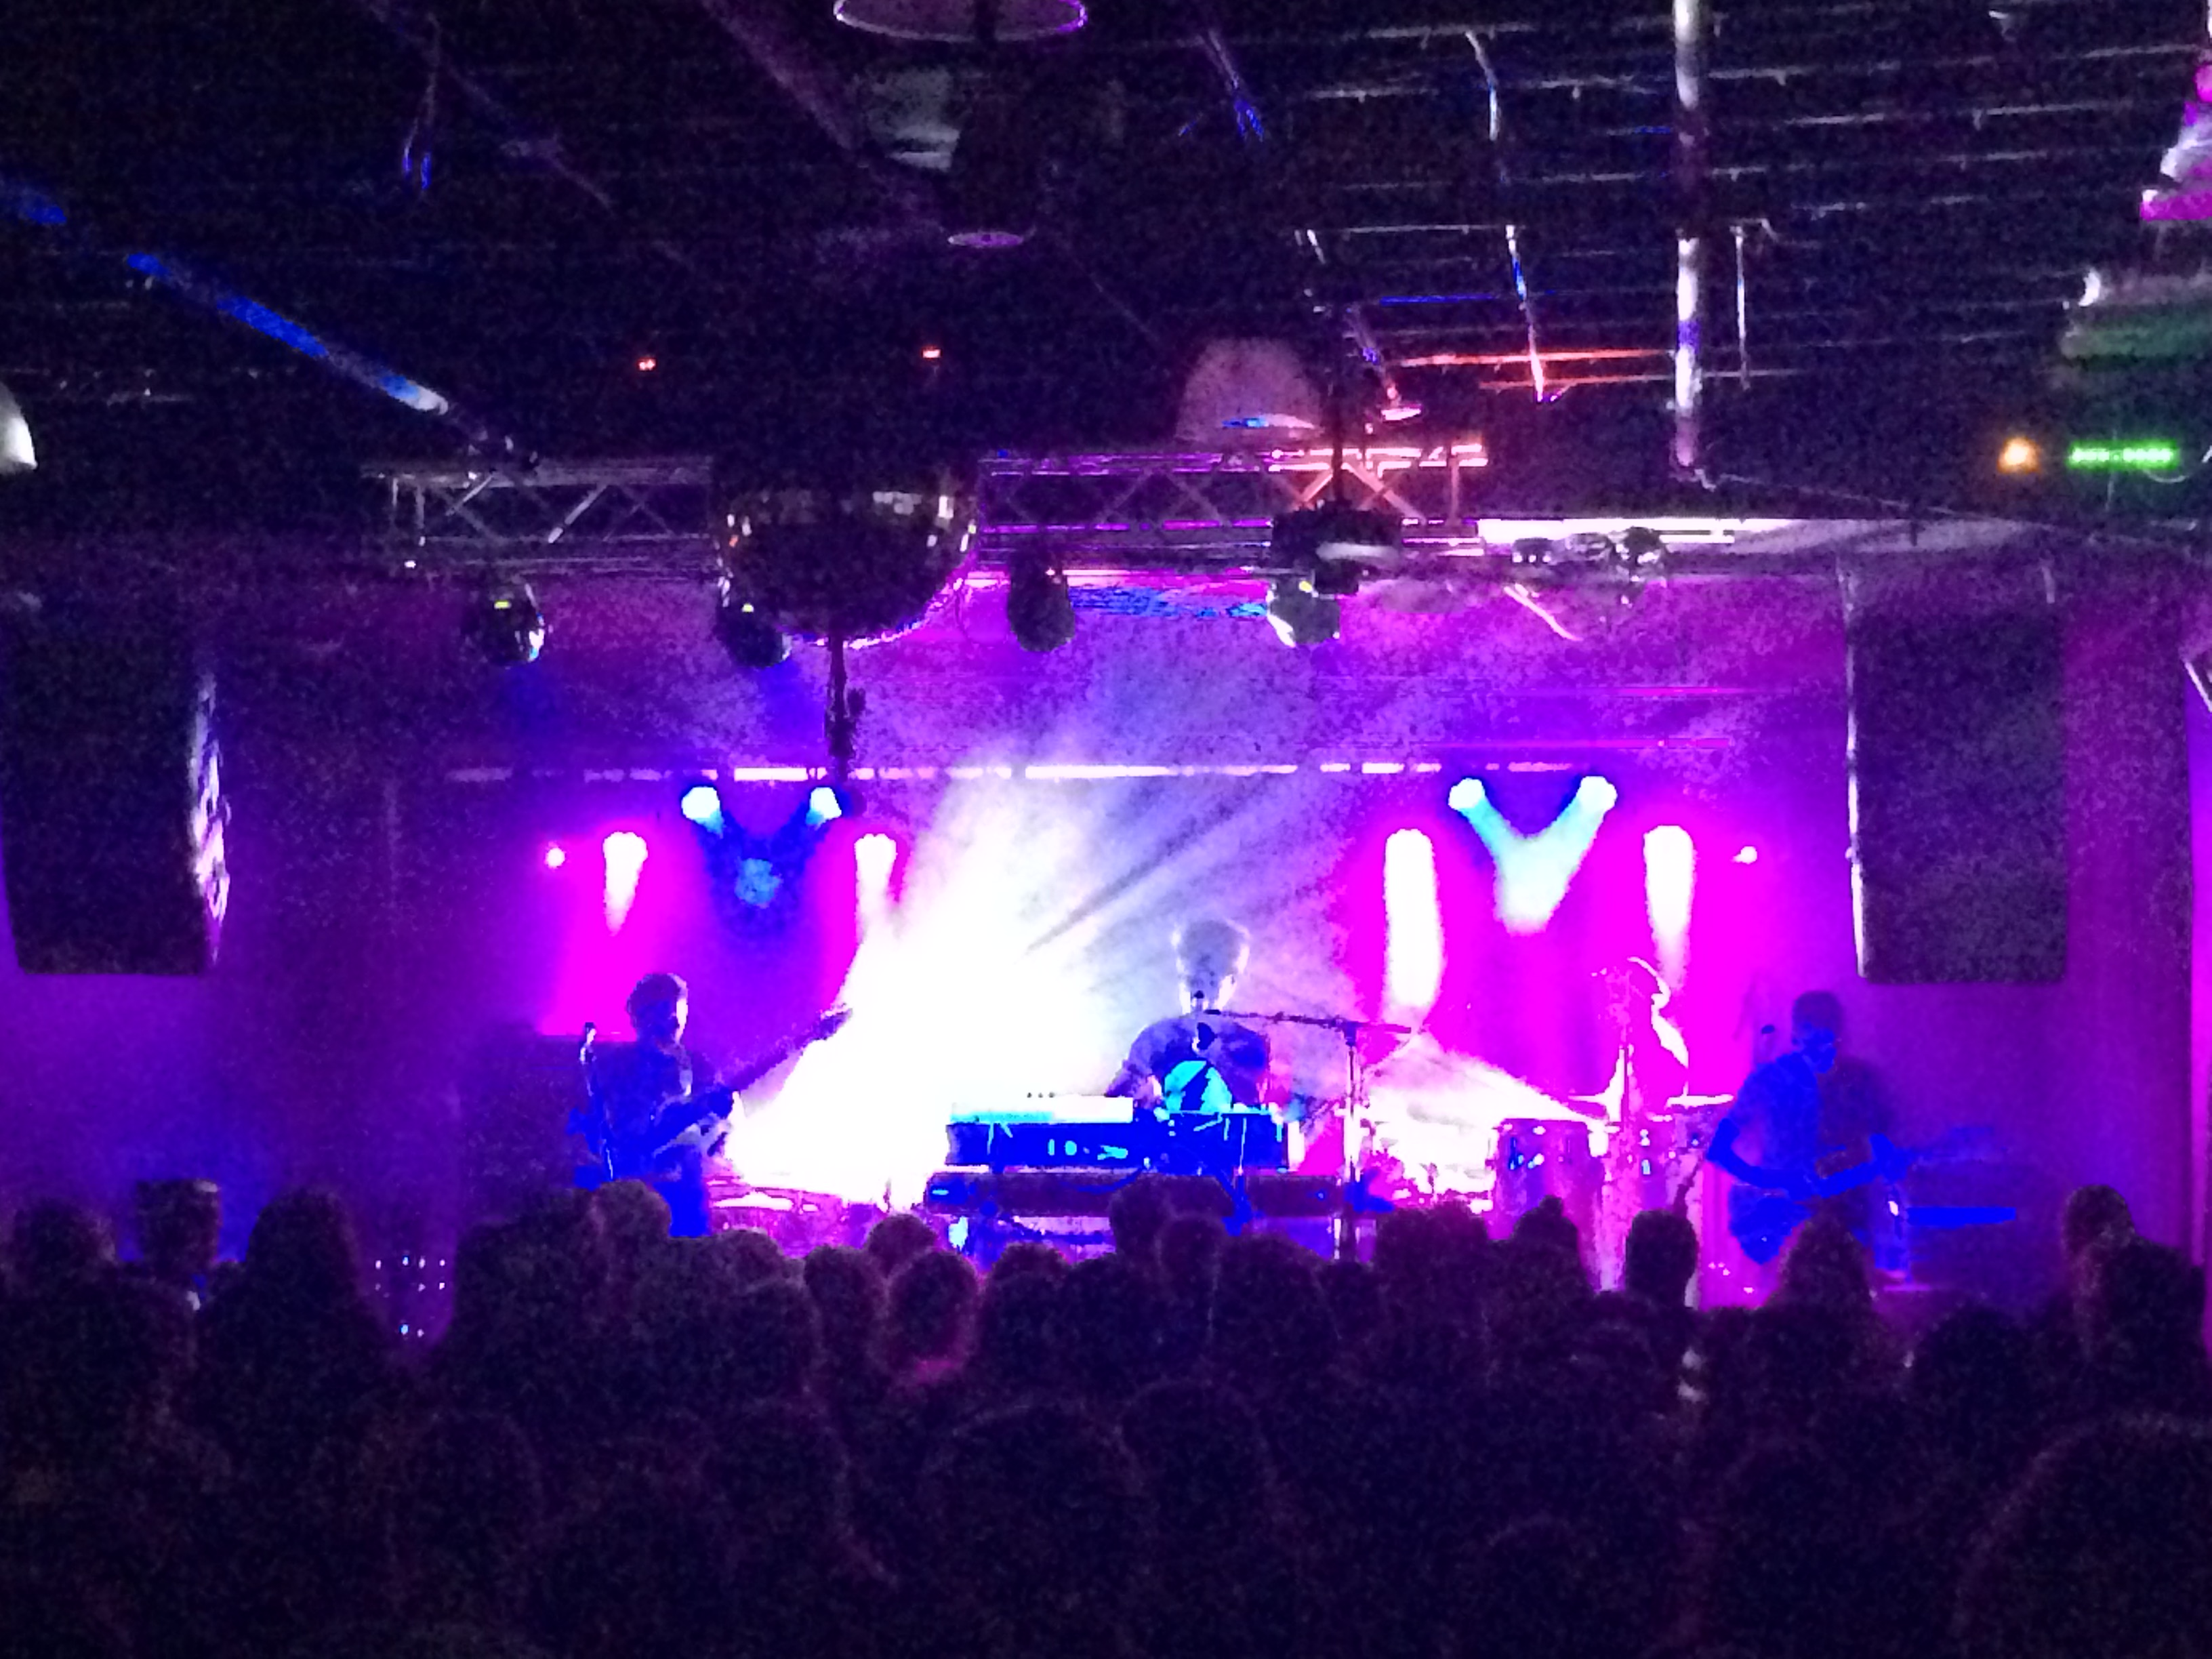 Fritzgiving show at Asheville Music Hall was funk-infused crowd-pleaser